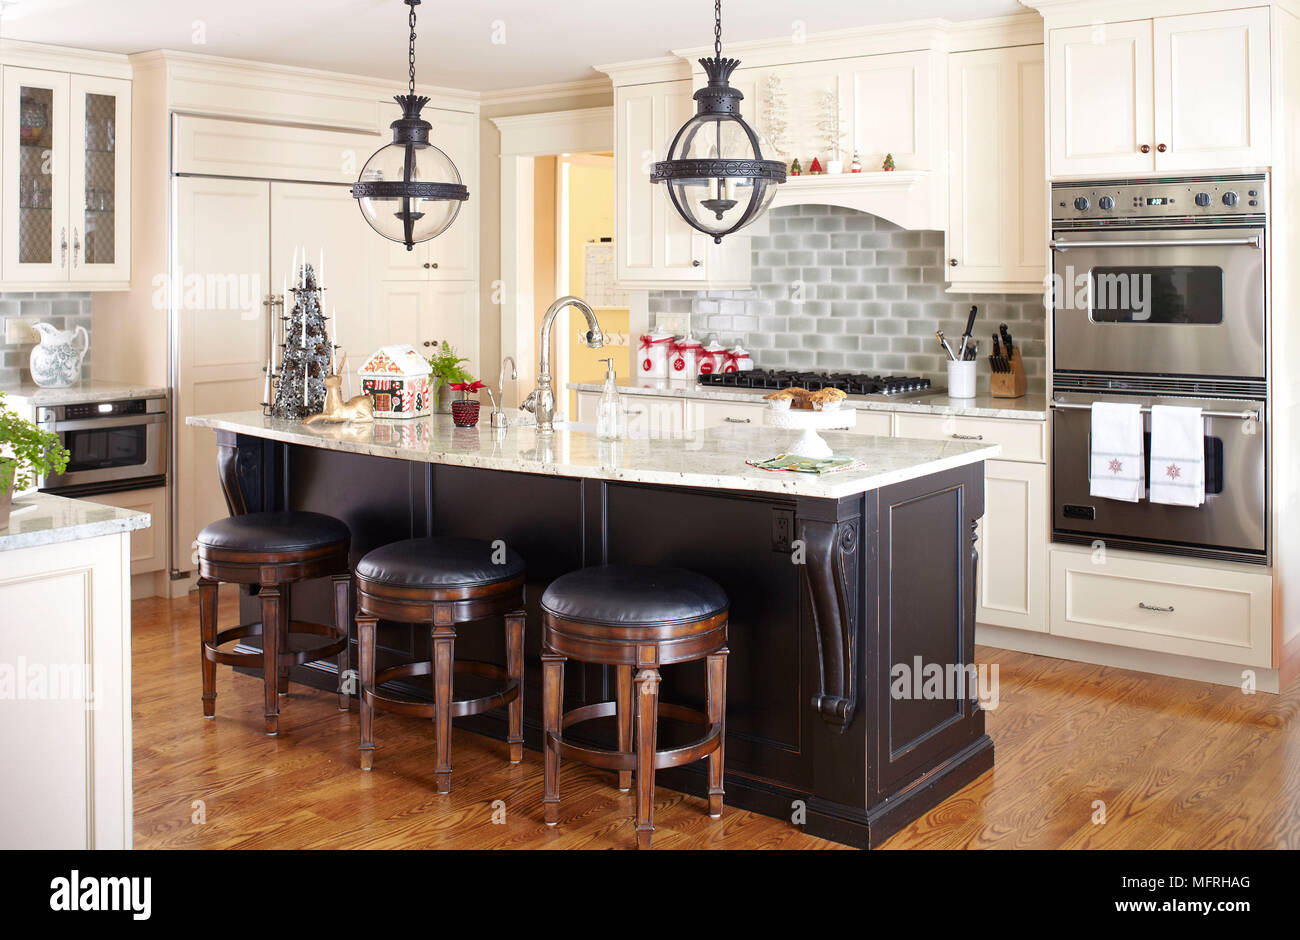 Bar Stools At Kitchen Island Breakfast Bar In Traditional ...